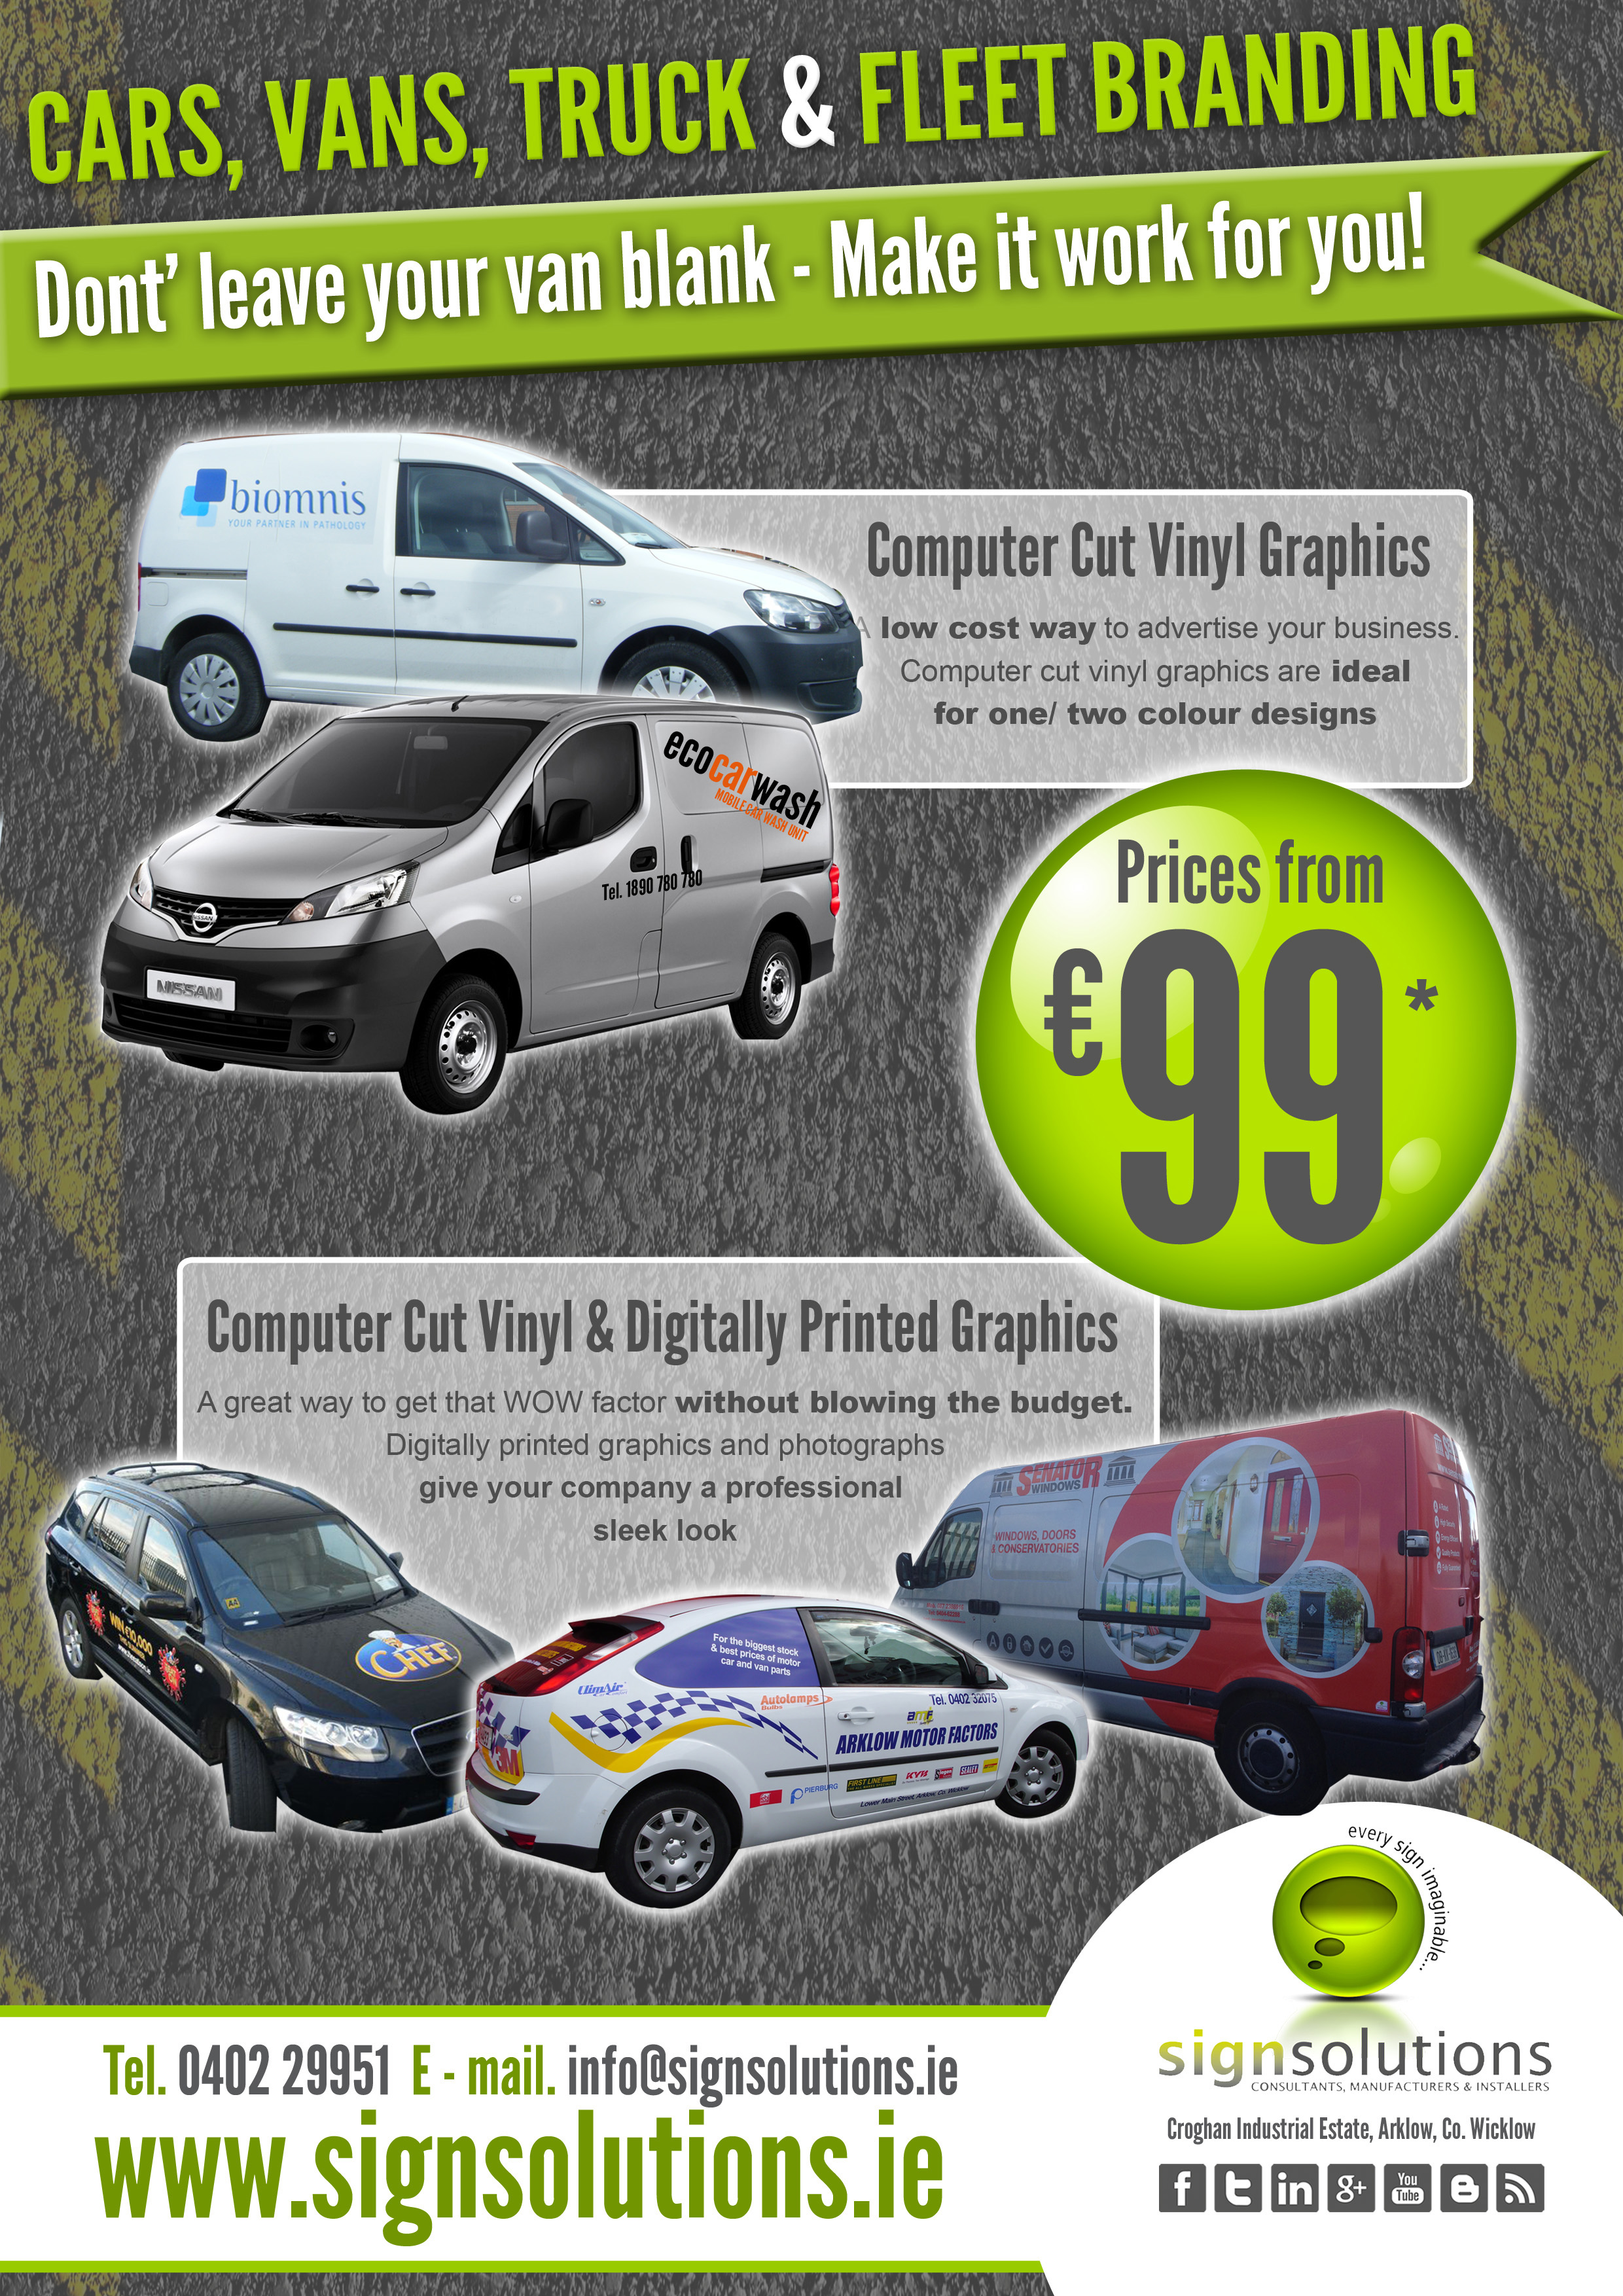 f) Vehicle Graphics Promotion